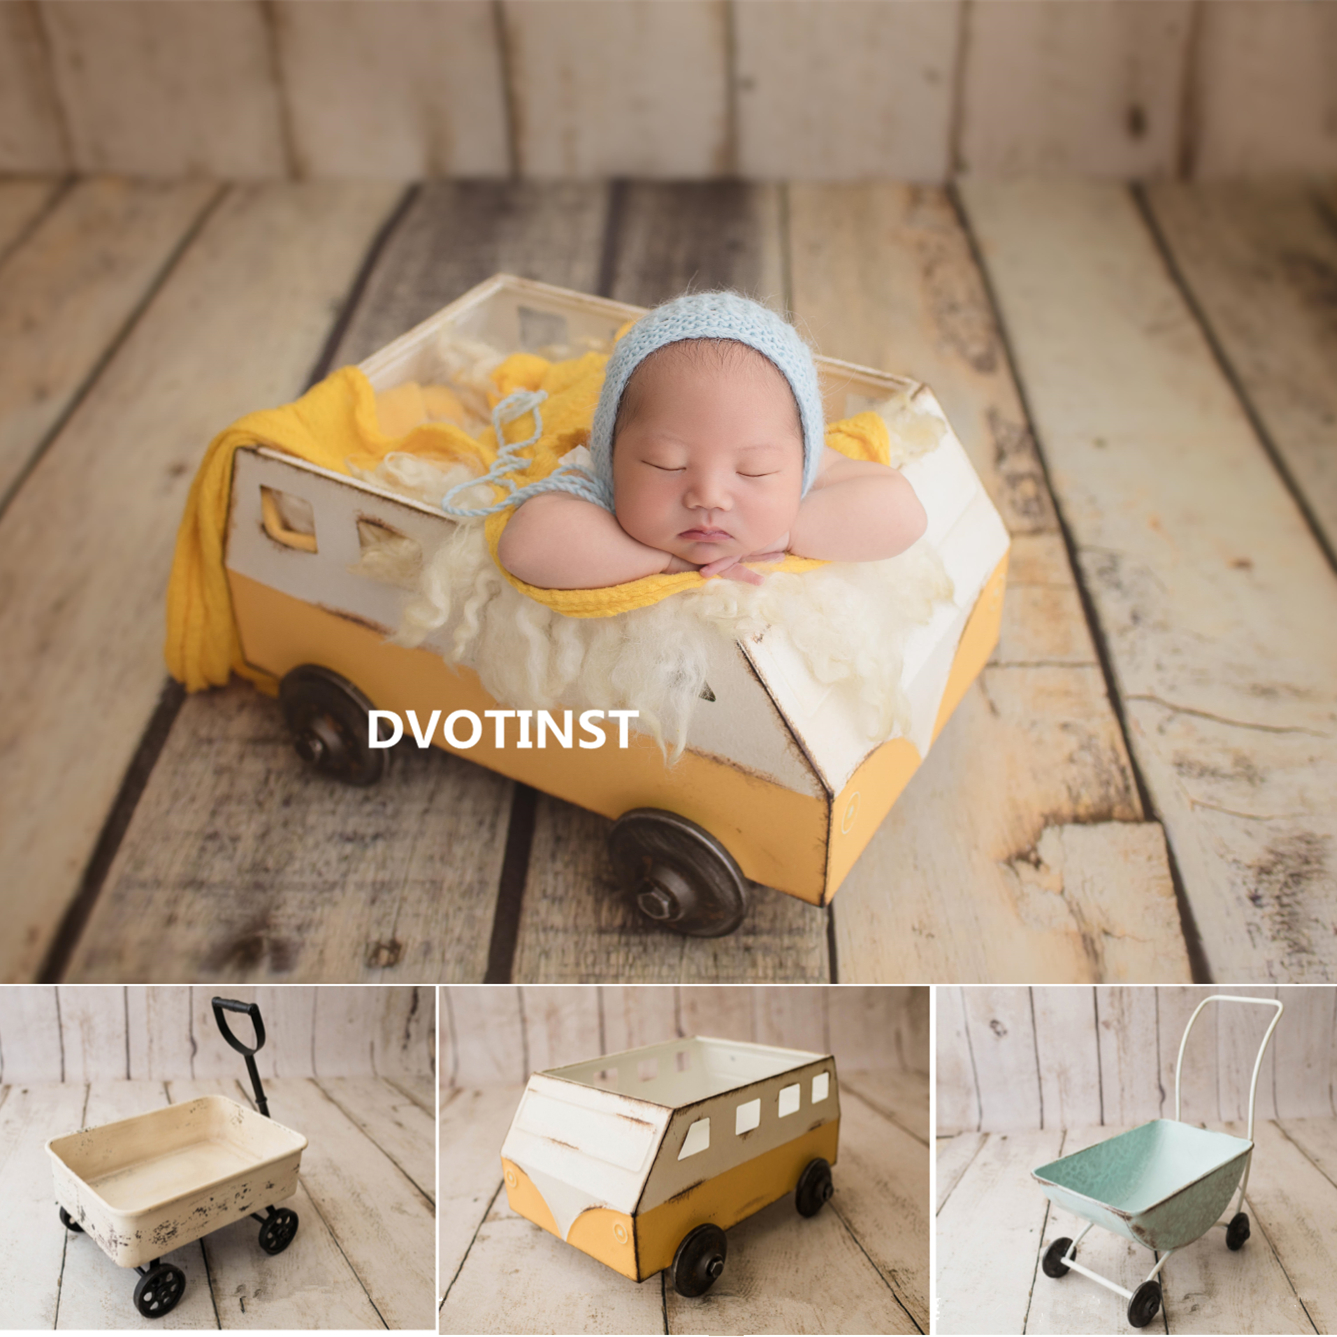 Dvotinst Newborn Photography Props Retro Posing Trolley Handcart Iron Mini Bus Fotografia Accessories Studio Shoot Photo Props